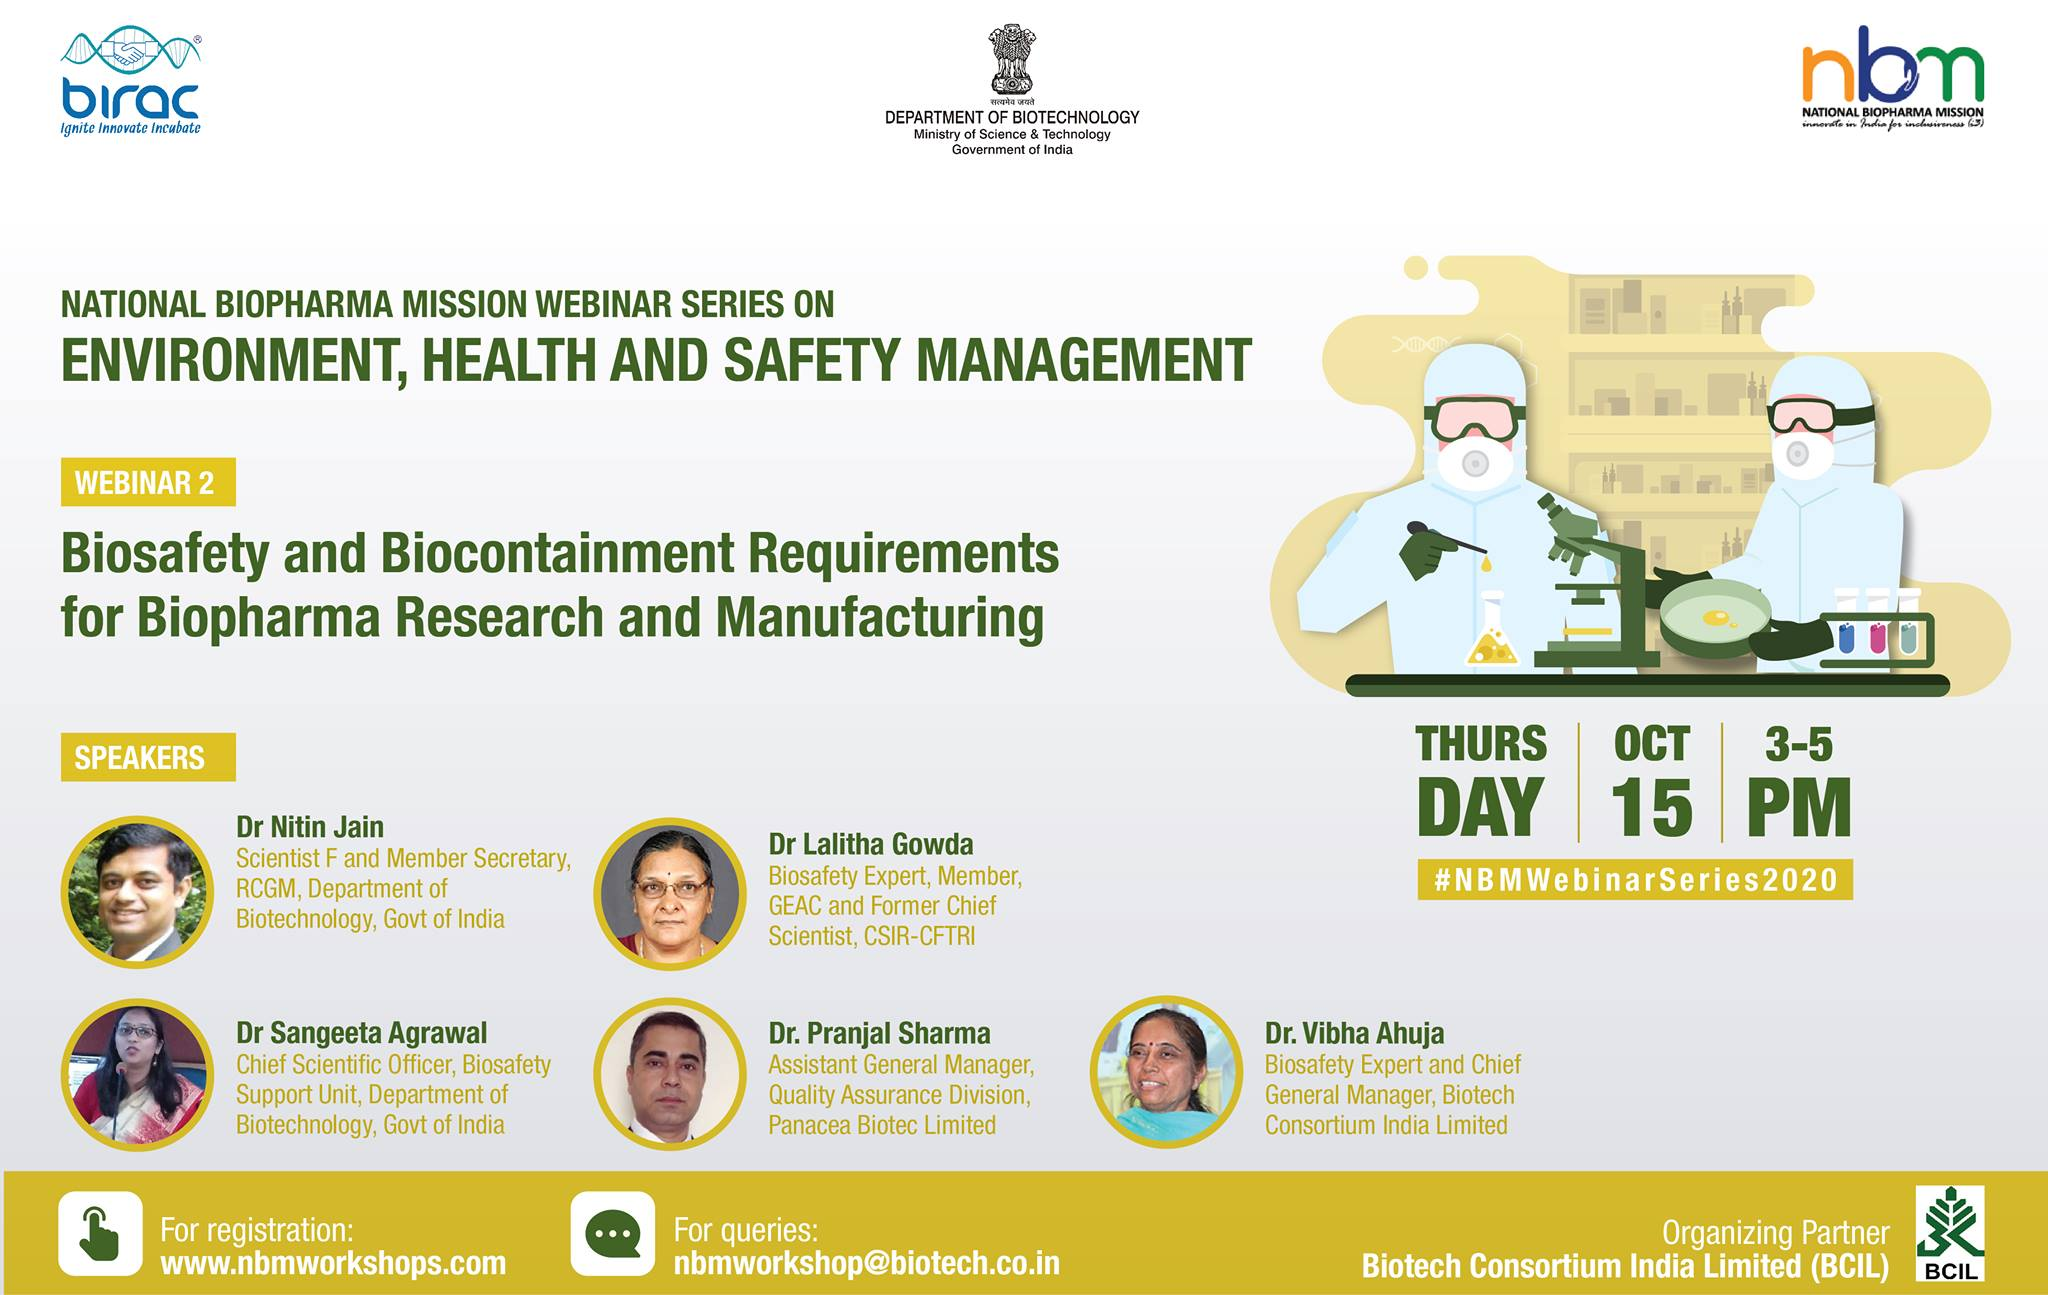 Biosafety and Biocontainment Requirements for Biopharma Research and Manufacturing